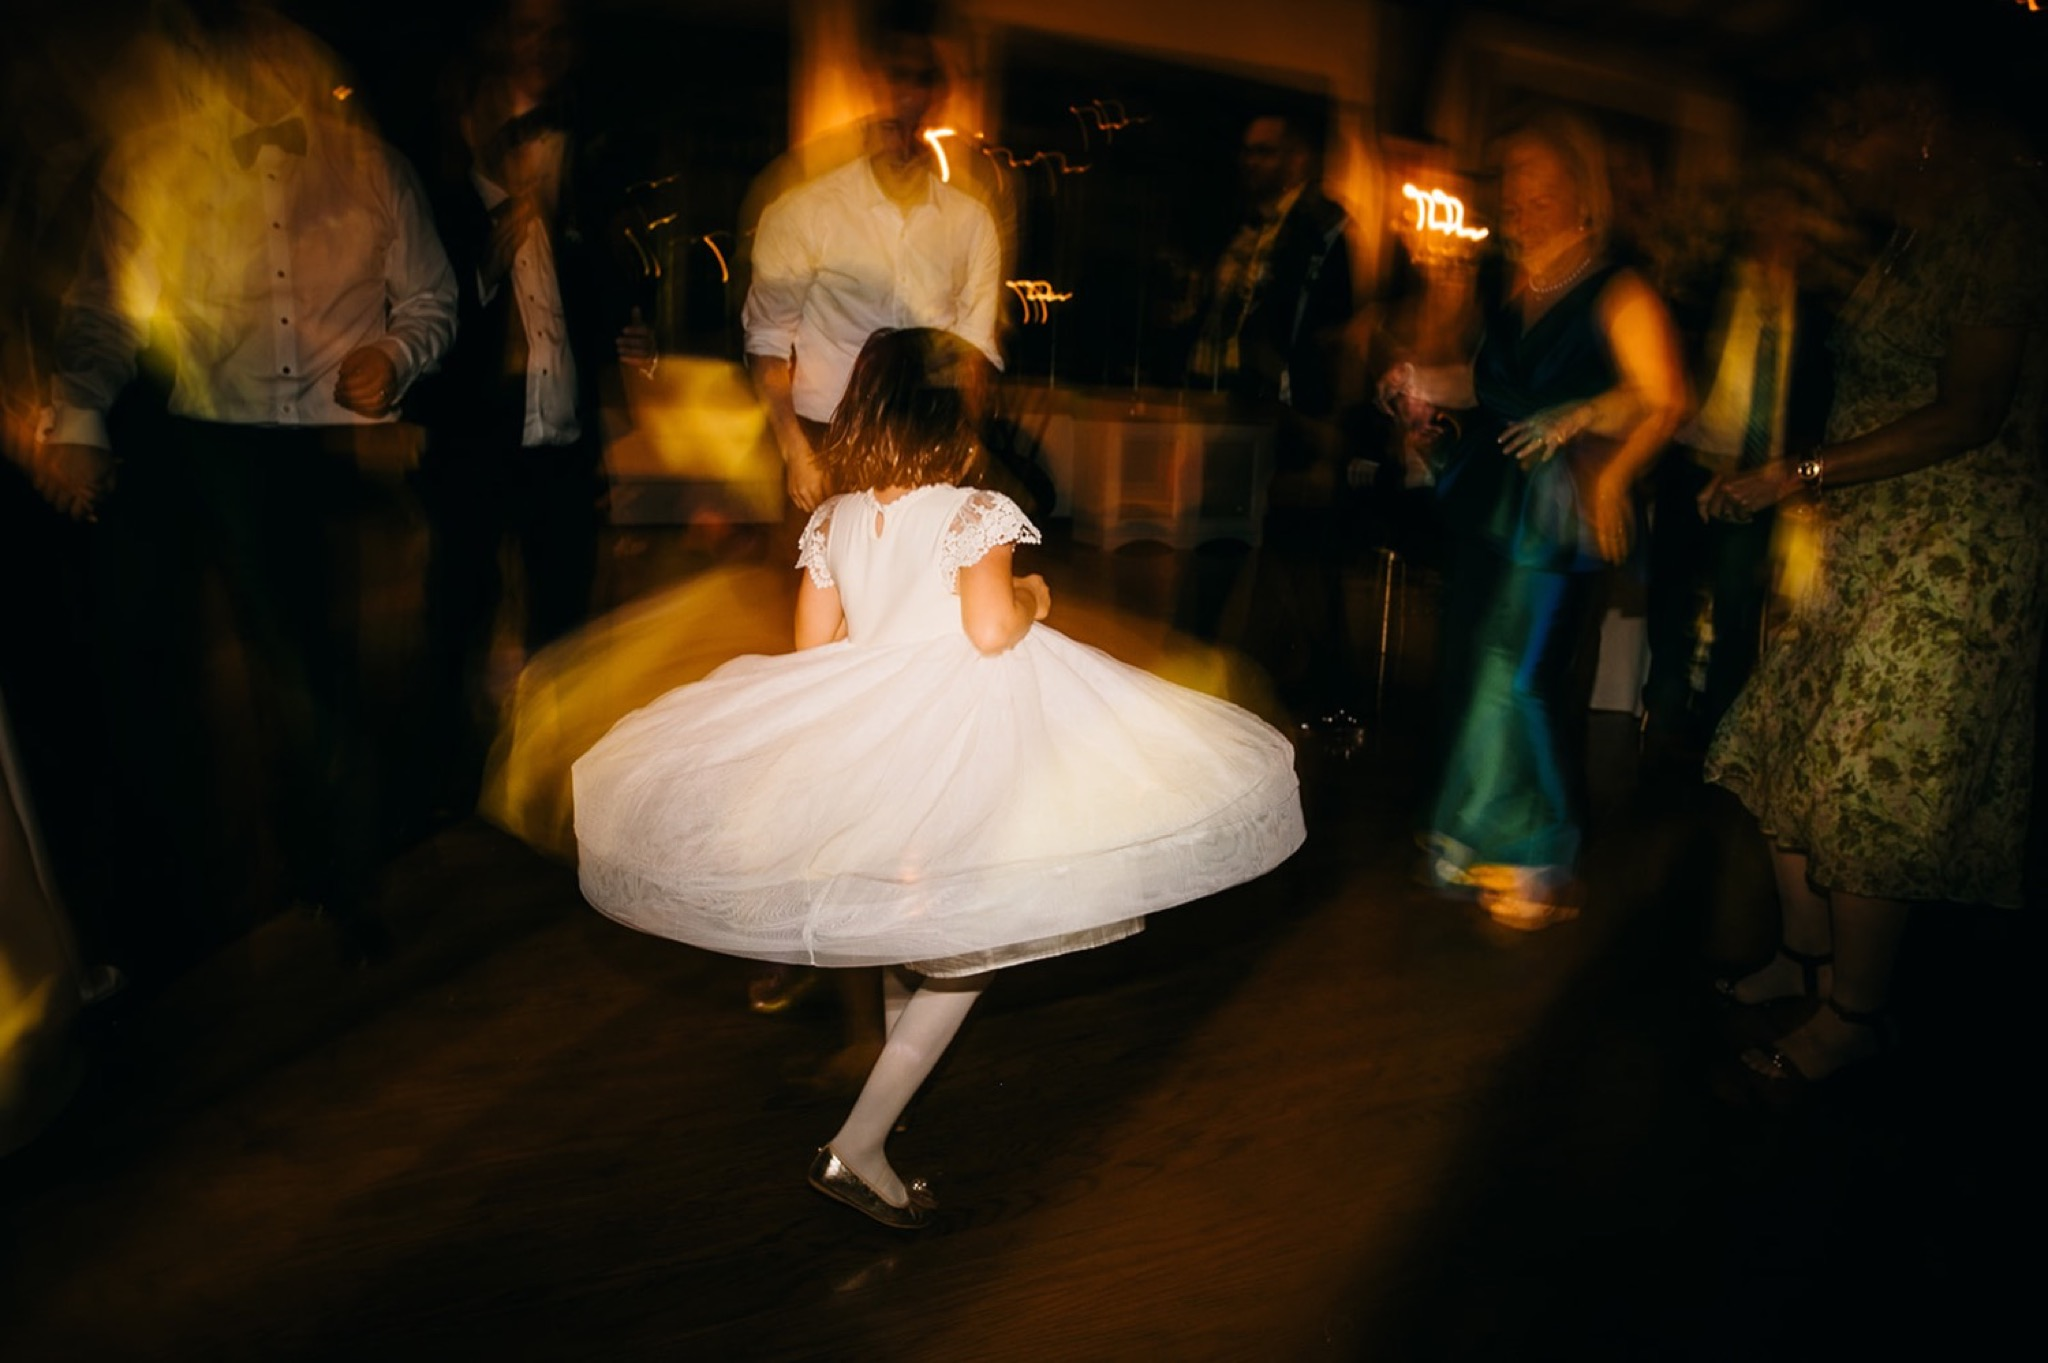 a young girl twirls in a white dress while adults dance around her